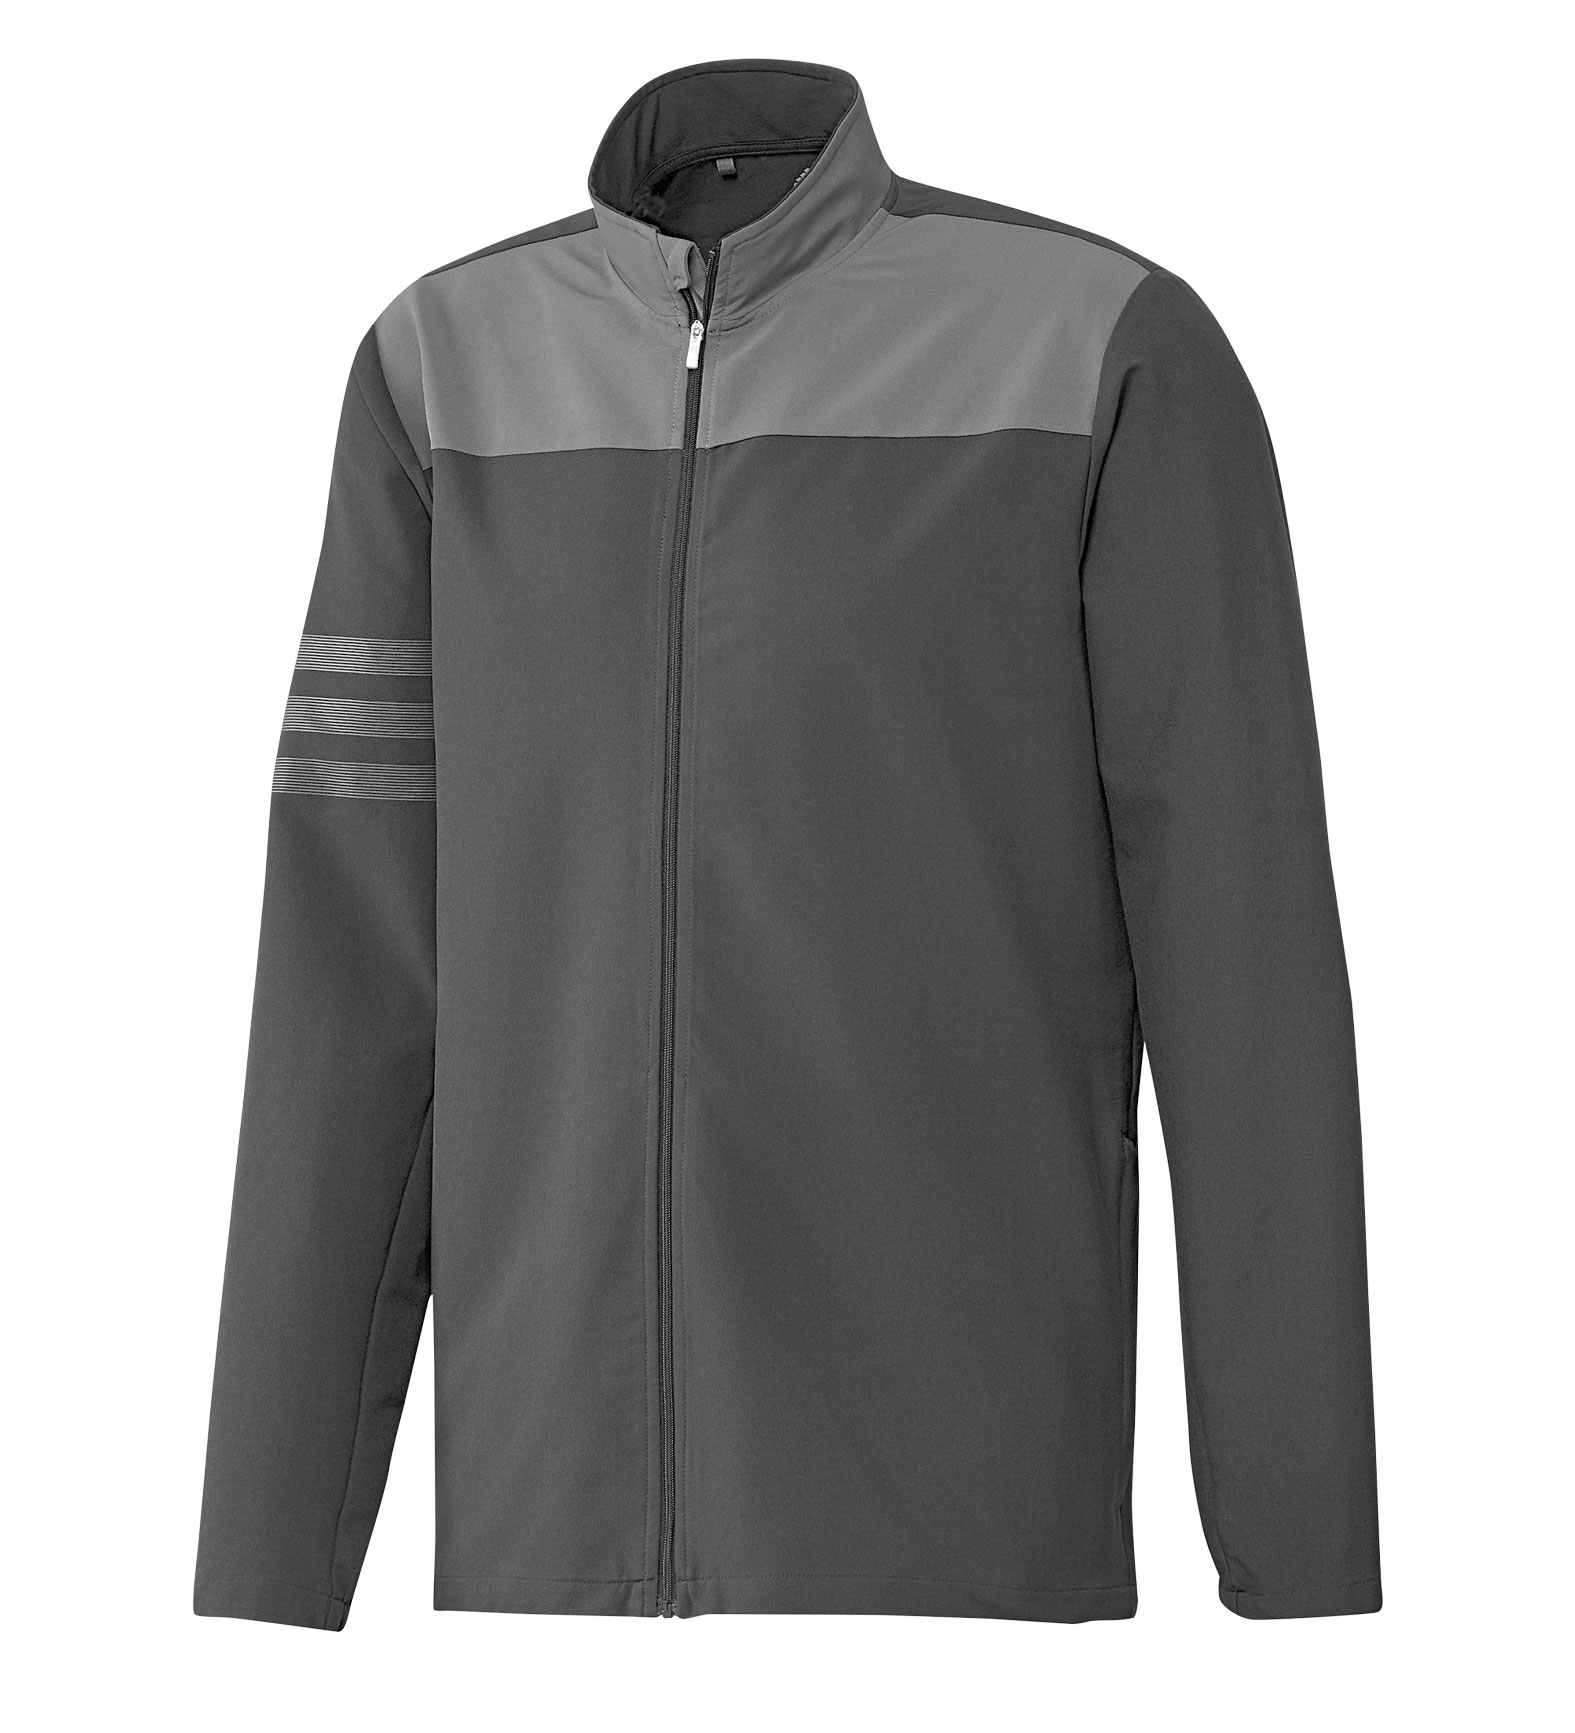 Adidas Mens Climastorm 3-Stripes Jacket